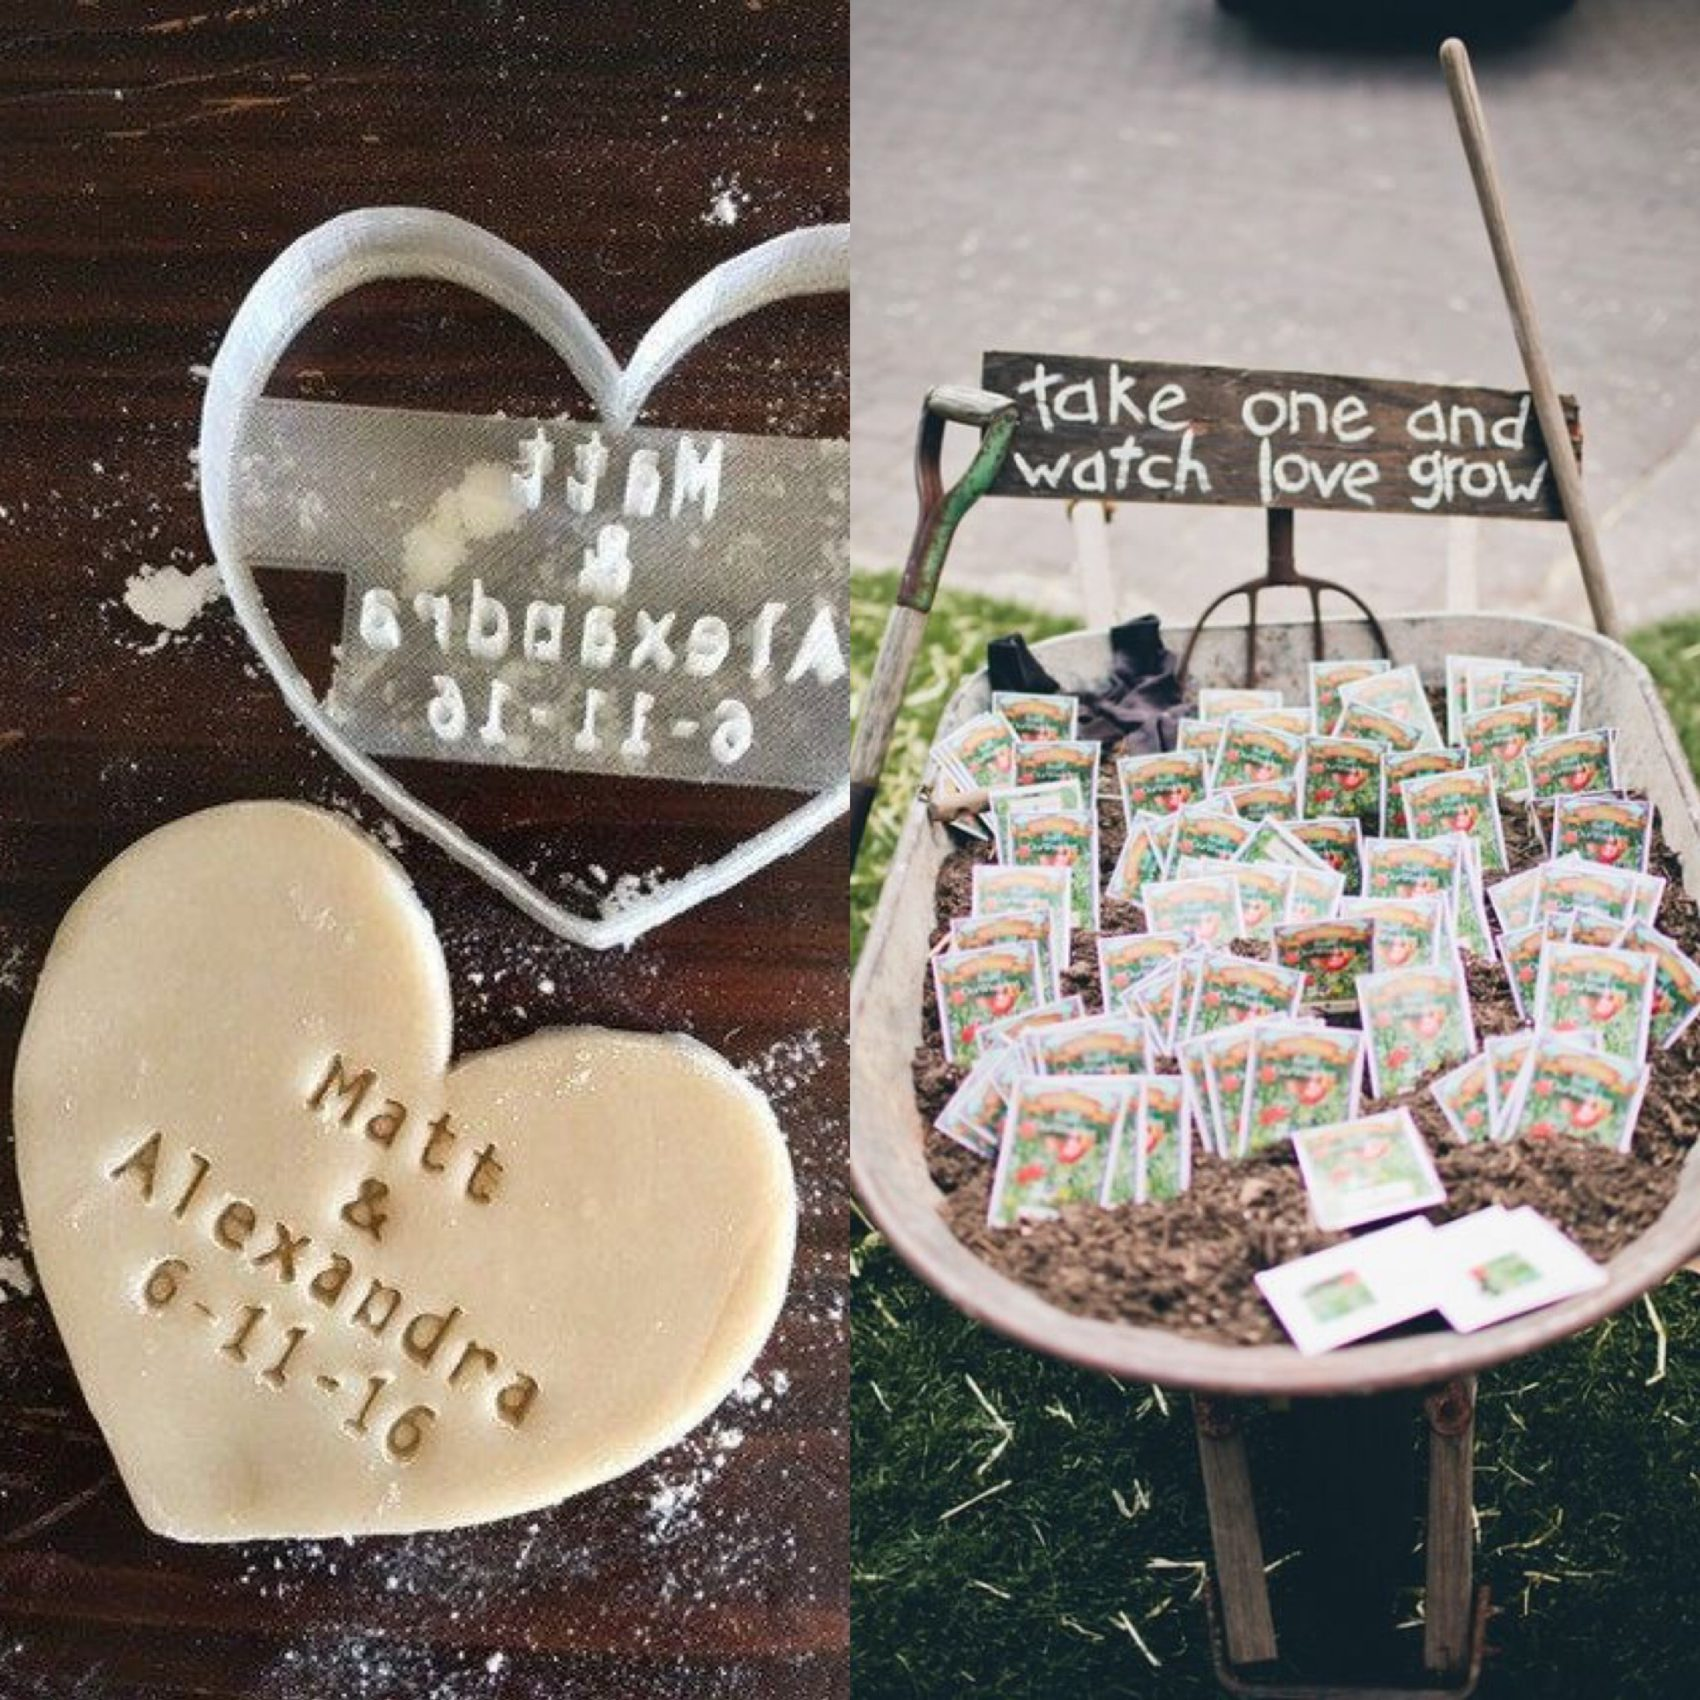 personalised cookie cutter, seeds in a barrow, wheel barrow, love grow, favours, thank you, guests, ever after, creative,